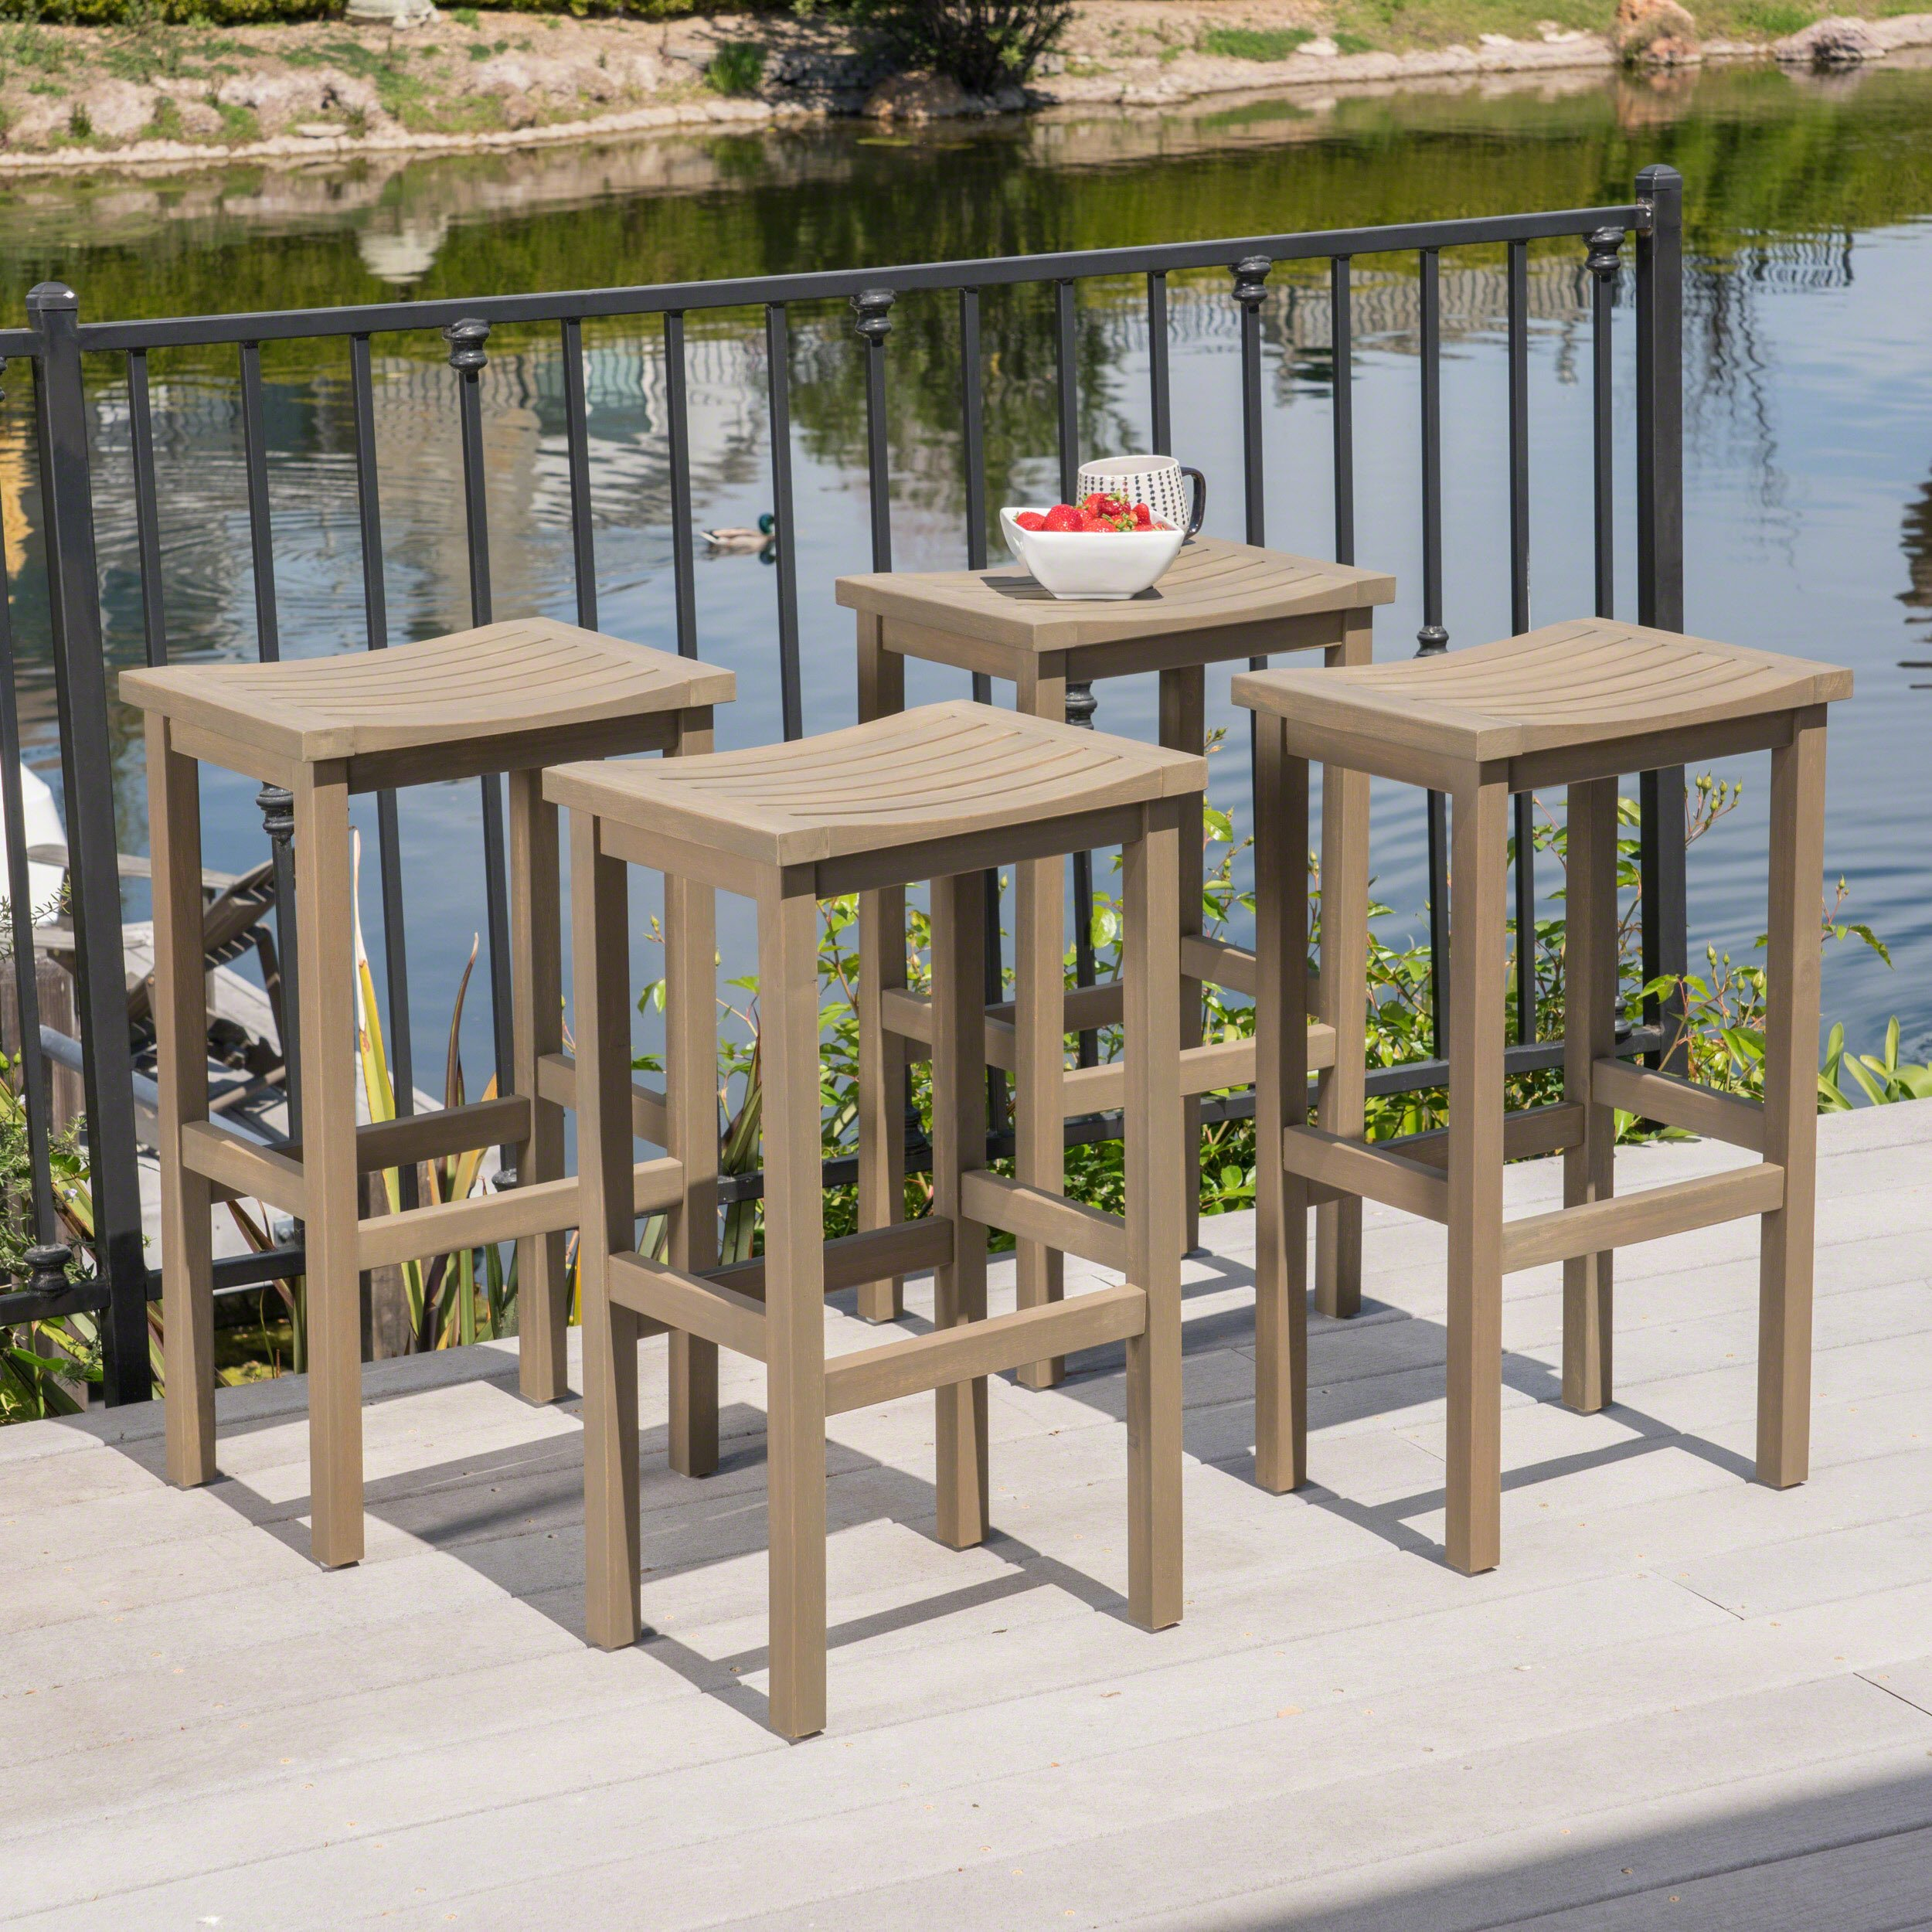 Christopher Knight Home 304159 Caribbean Outdoor Acacia Wood Barstools (Set of 4), Gray Finish